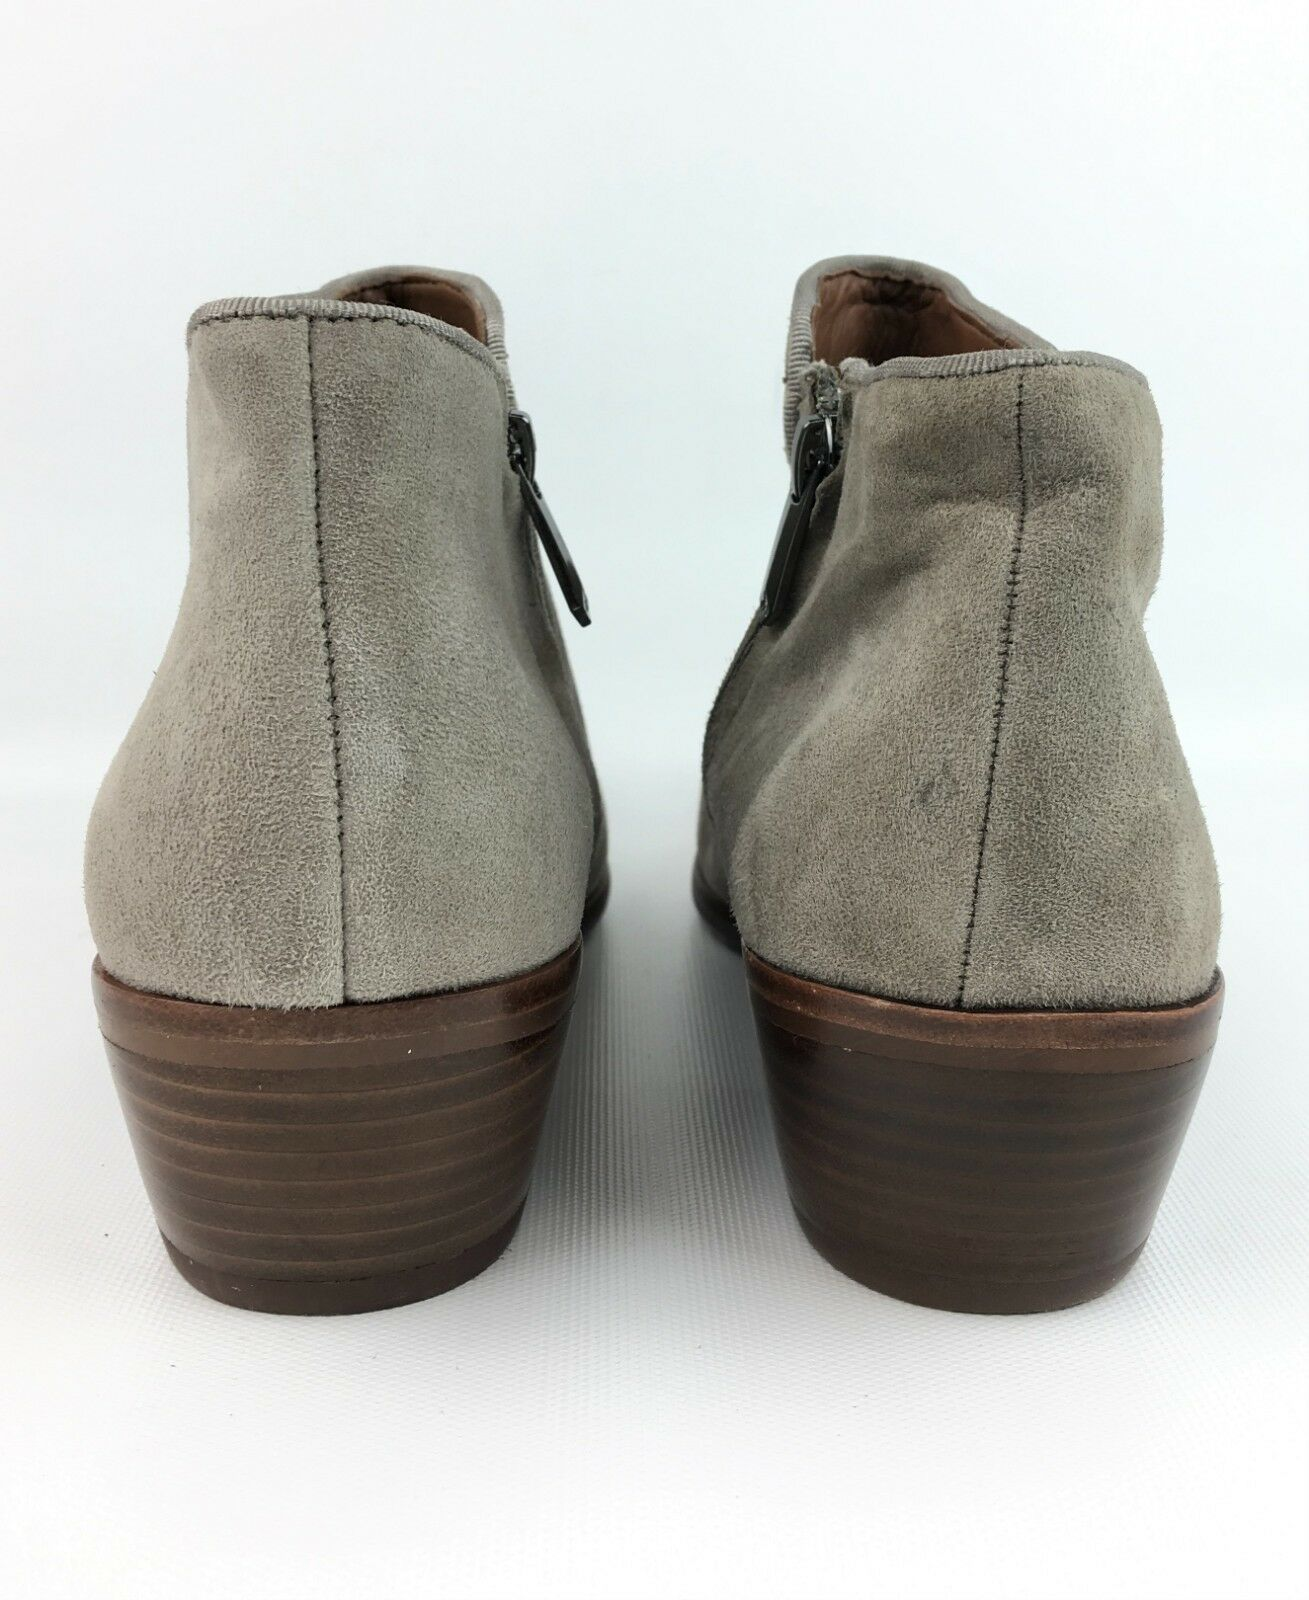 Sam Edelman 'Petty' 'Petty' 'Petty' Putty Gray Suede Ankle Heeled Booties sz: US 7 e834a2